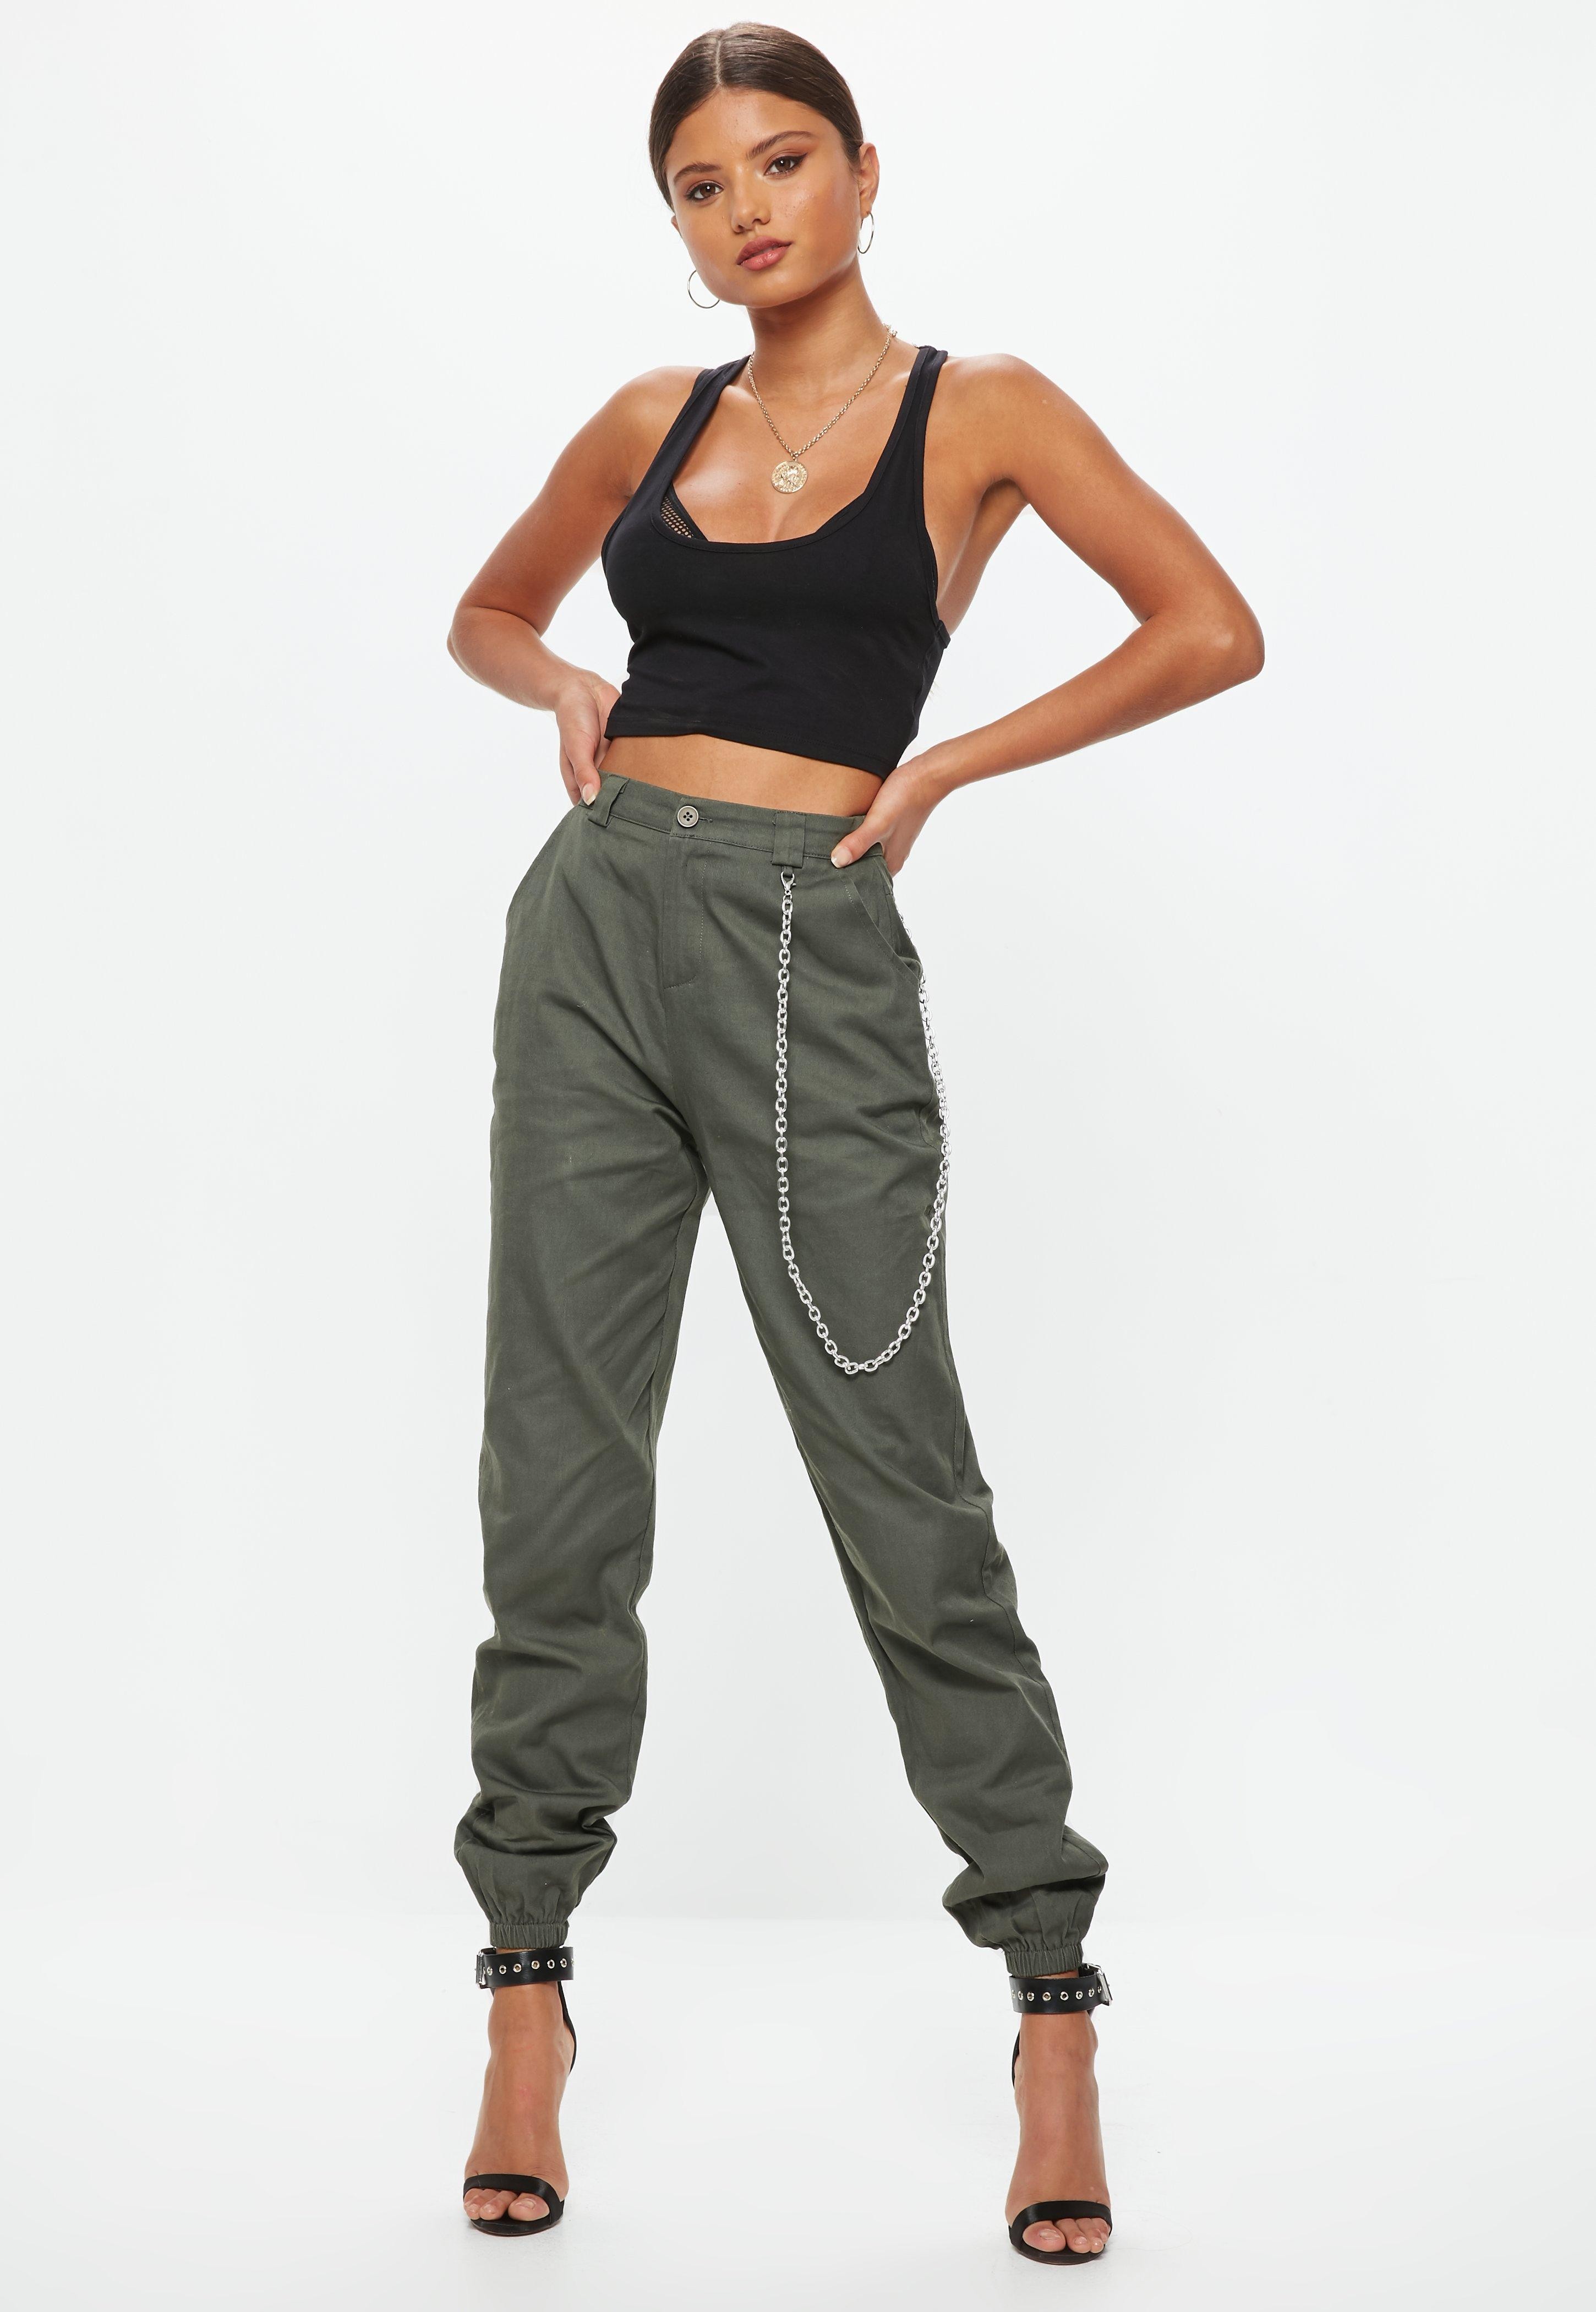 Missguided High Waist Tie Cargo Trousers Latest Collections Cheap Price Outlet For Sale Clearance Top Quality Clearance Best JUAur